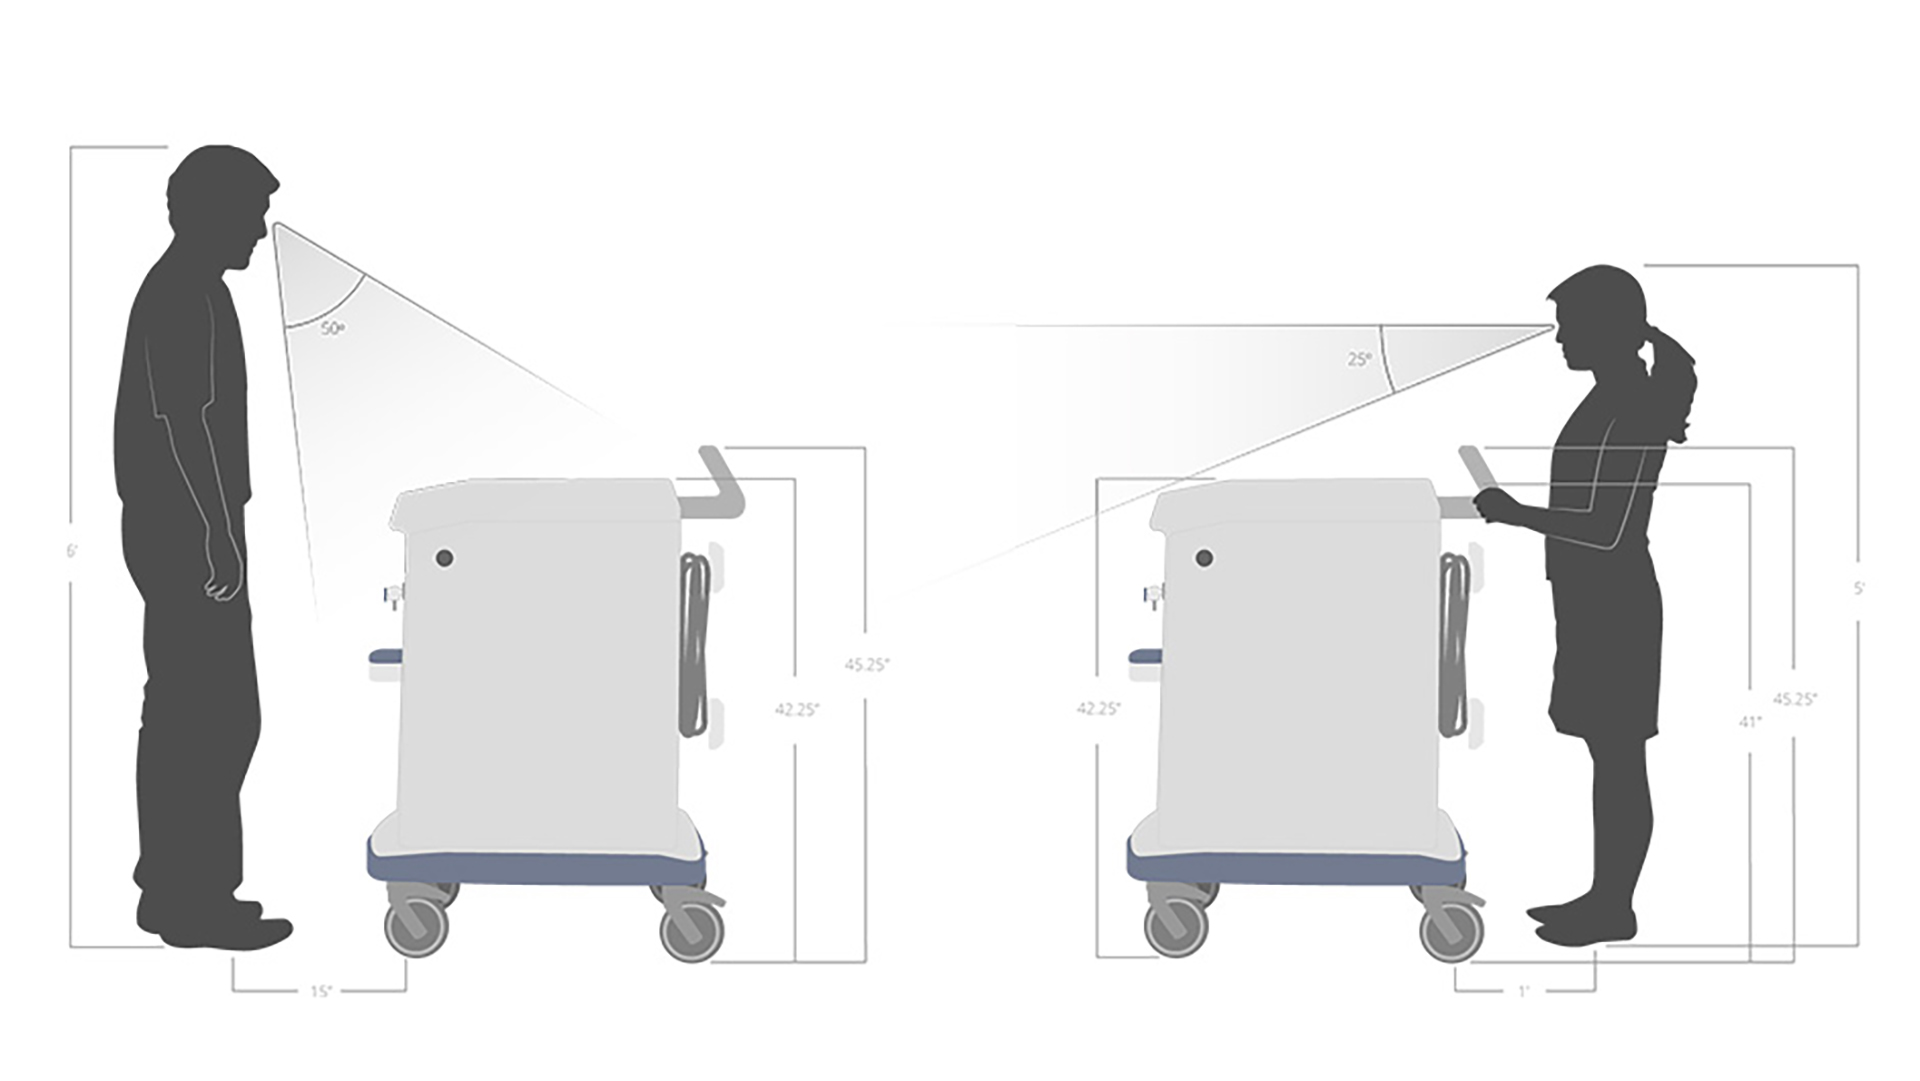 priority_designs_marcor_medical_cart_design_engineering_prototyping_008